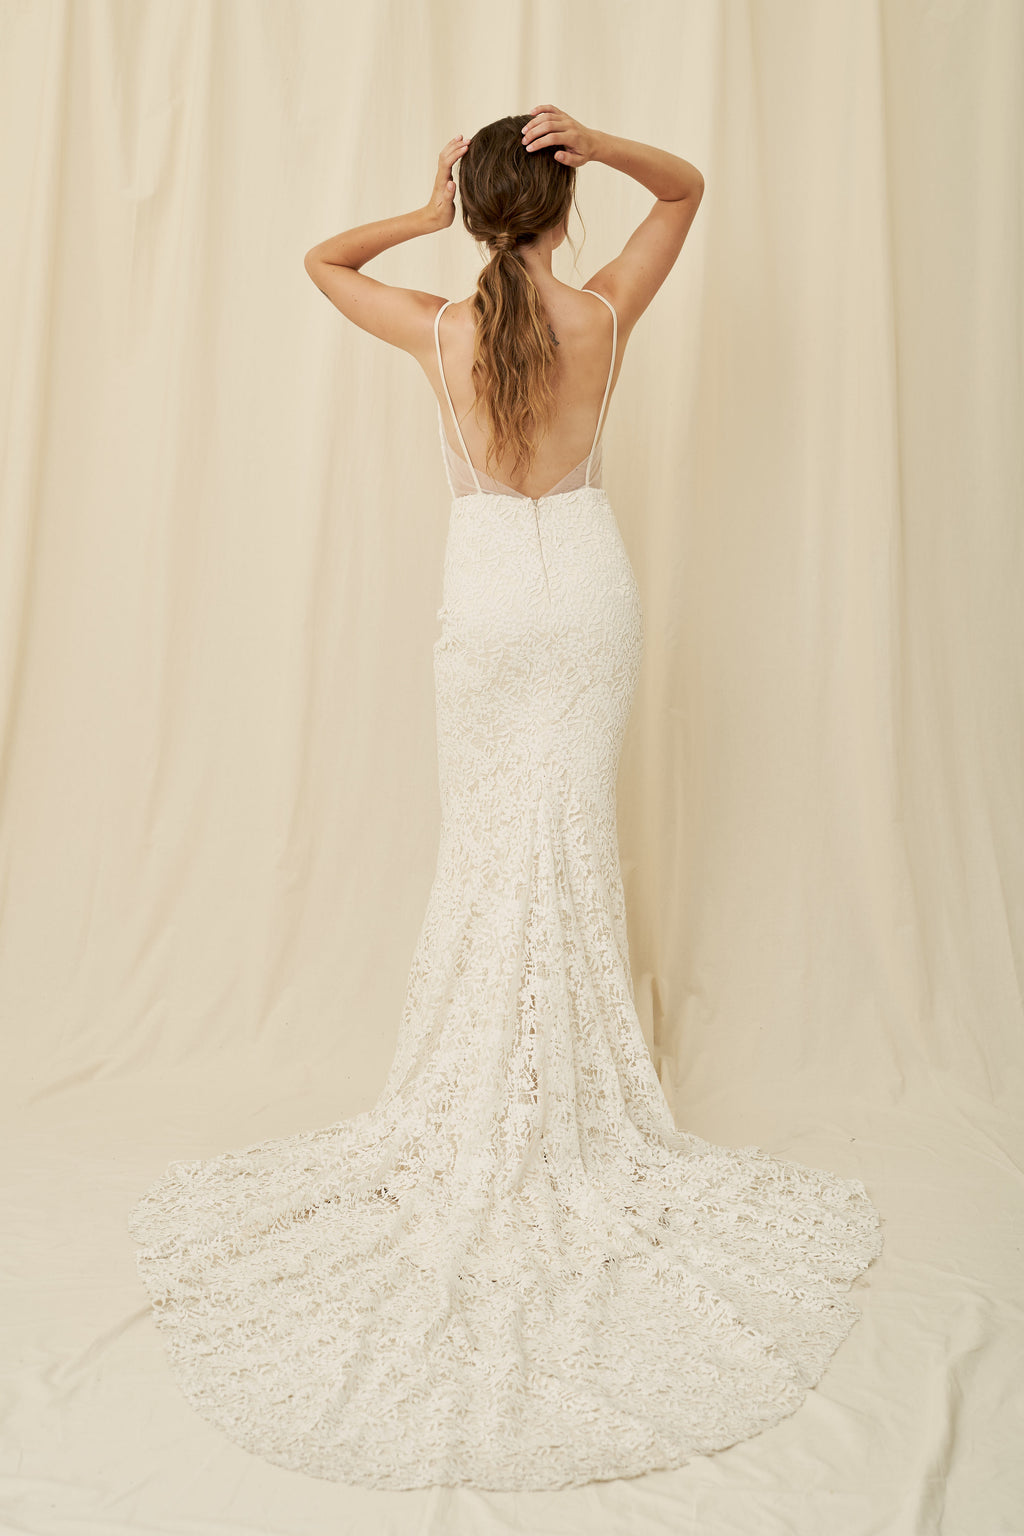 A botanical lace mermaid wedding gown with a plunging neckline and long train